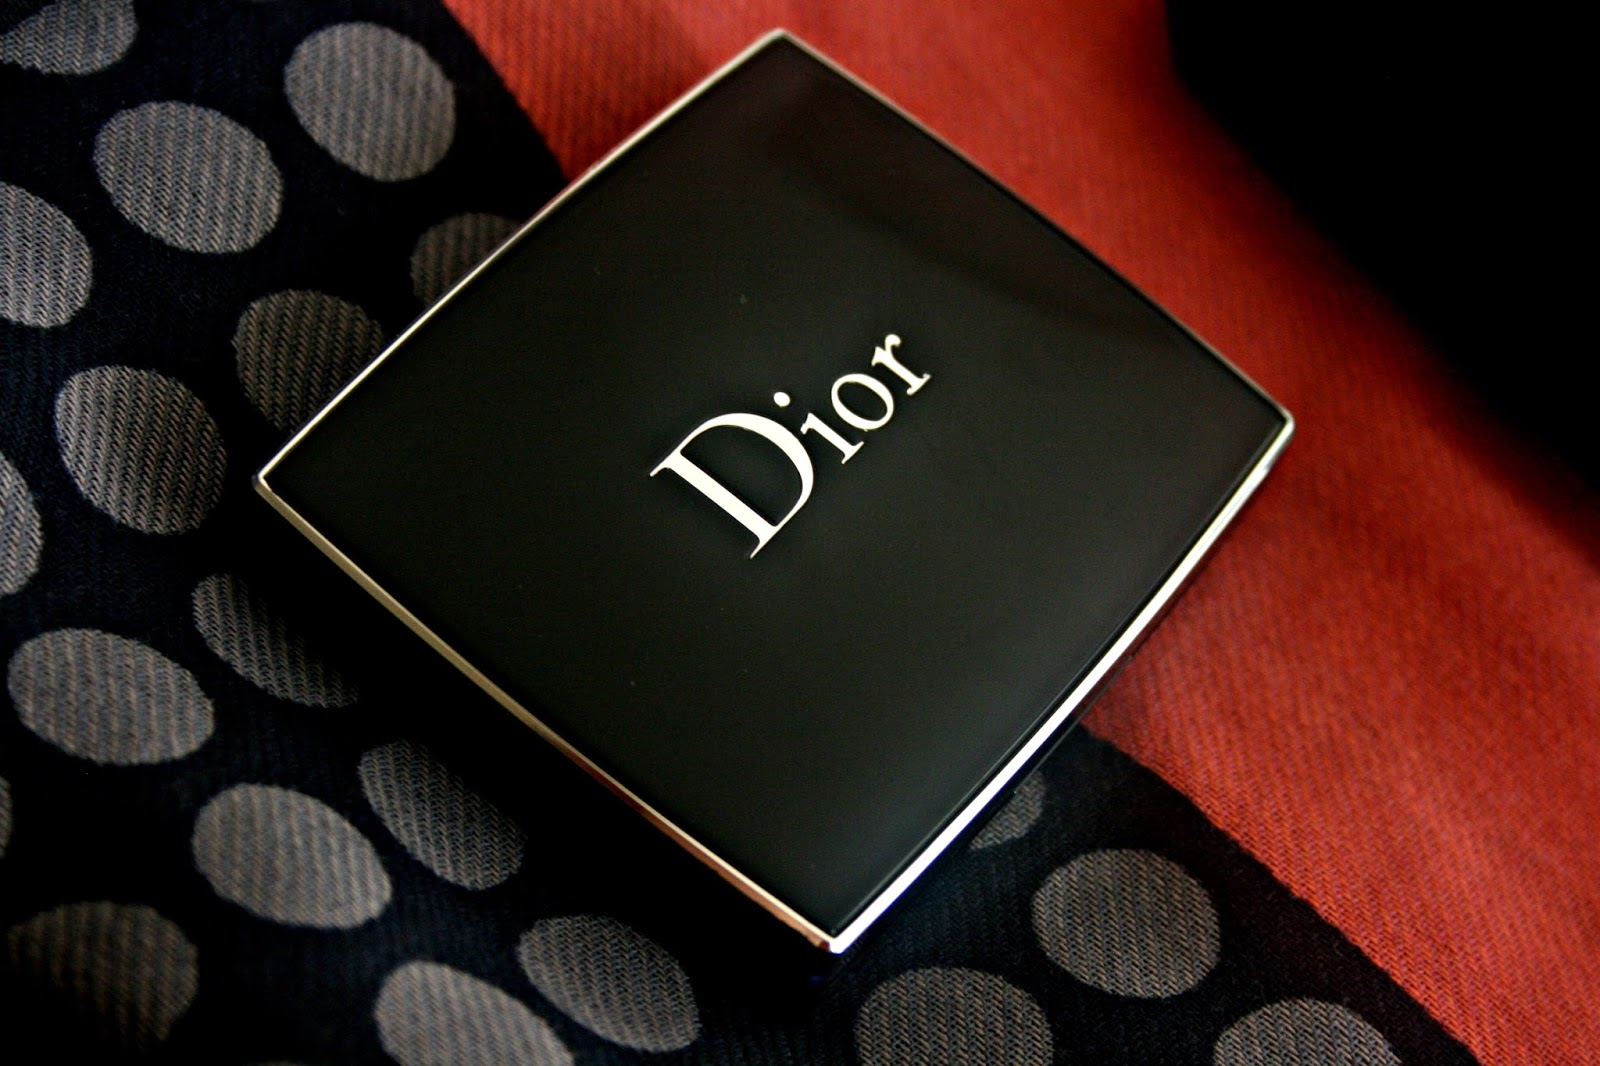 Dior Blush in Corail Bagatelle Review, Photos & Swatches